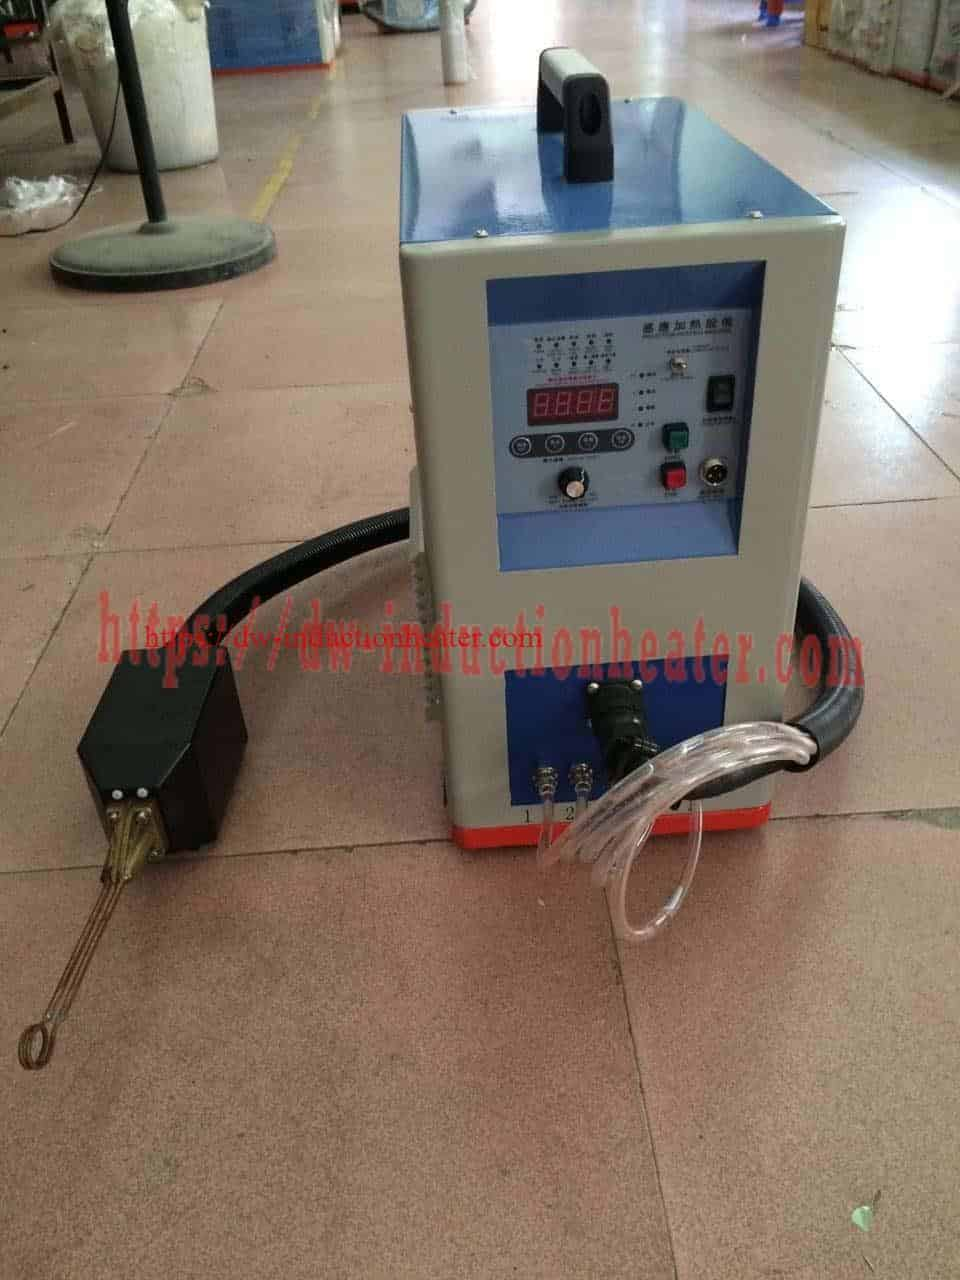 Induction Heating Aluminum Pipe With Igbt Heater Circuit Also Water Element Handheld Brazing